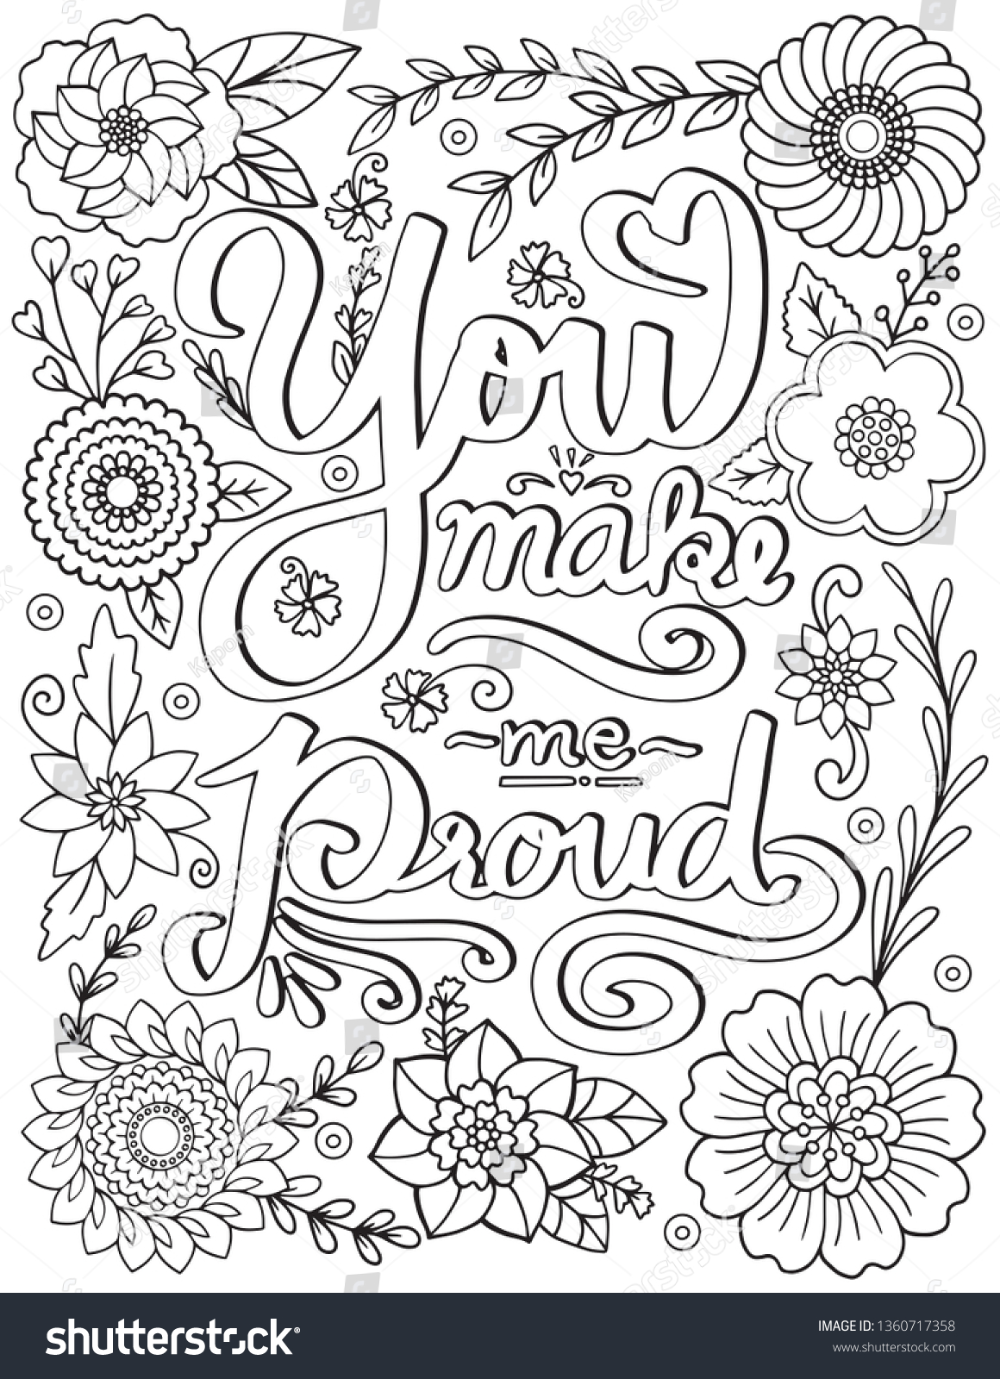 You Make Me Proud Font Flower Stock Vector (Royalty Free ...